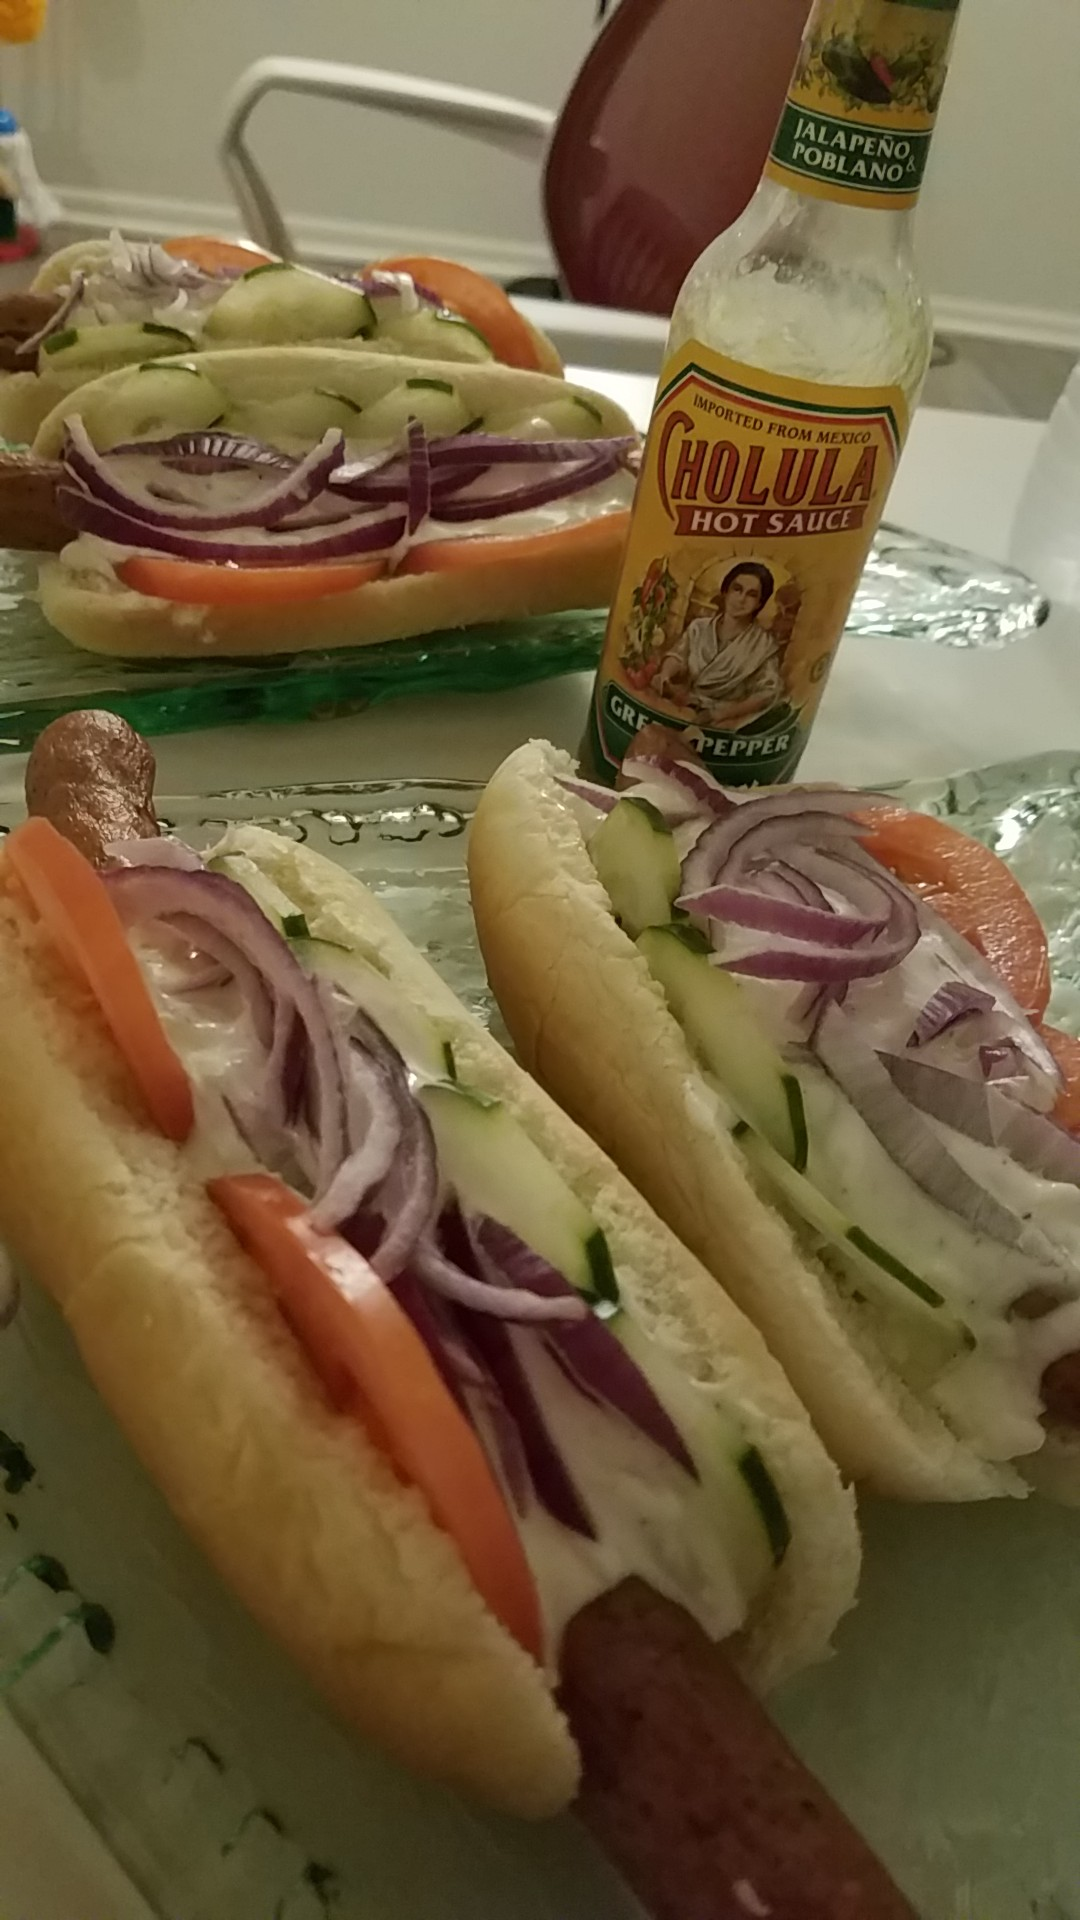 Molly's Mouthwatering Tzatziki Cucumber Sauce Yasmely Quezada